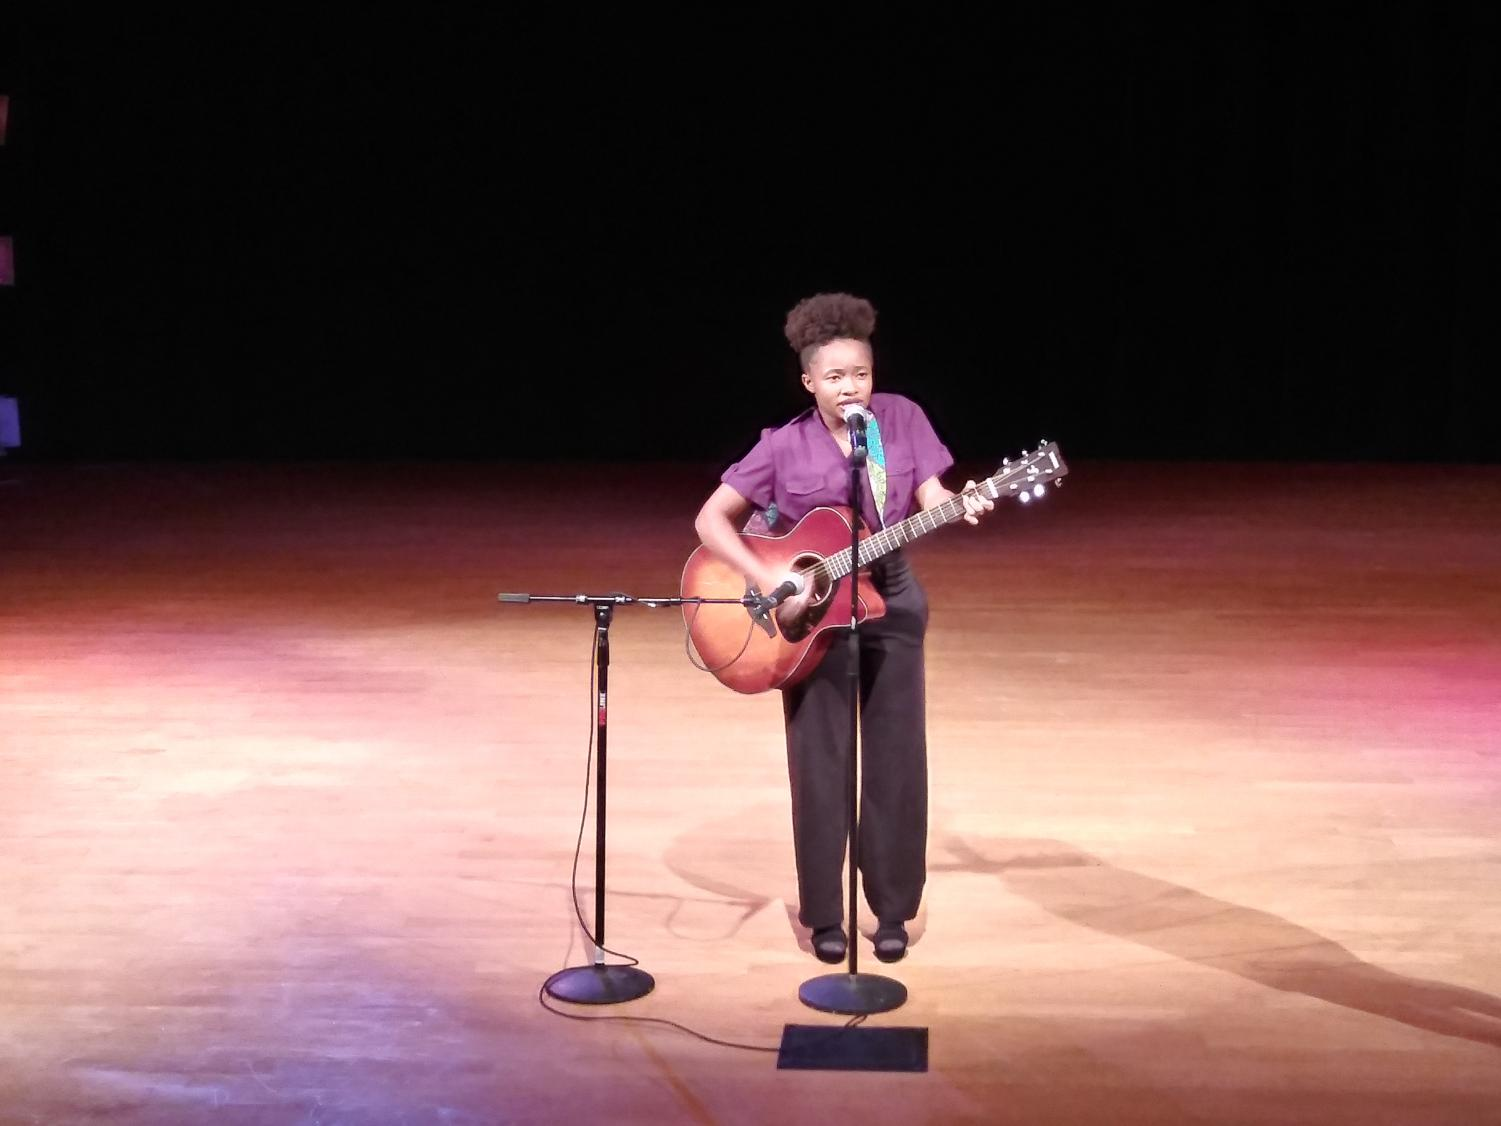 Marquette Winston, 16 years old, performing live at Twisted Storytellers in African American Museum in Detroit.